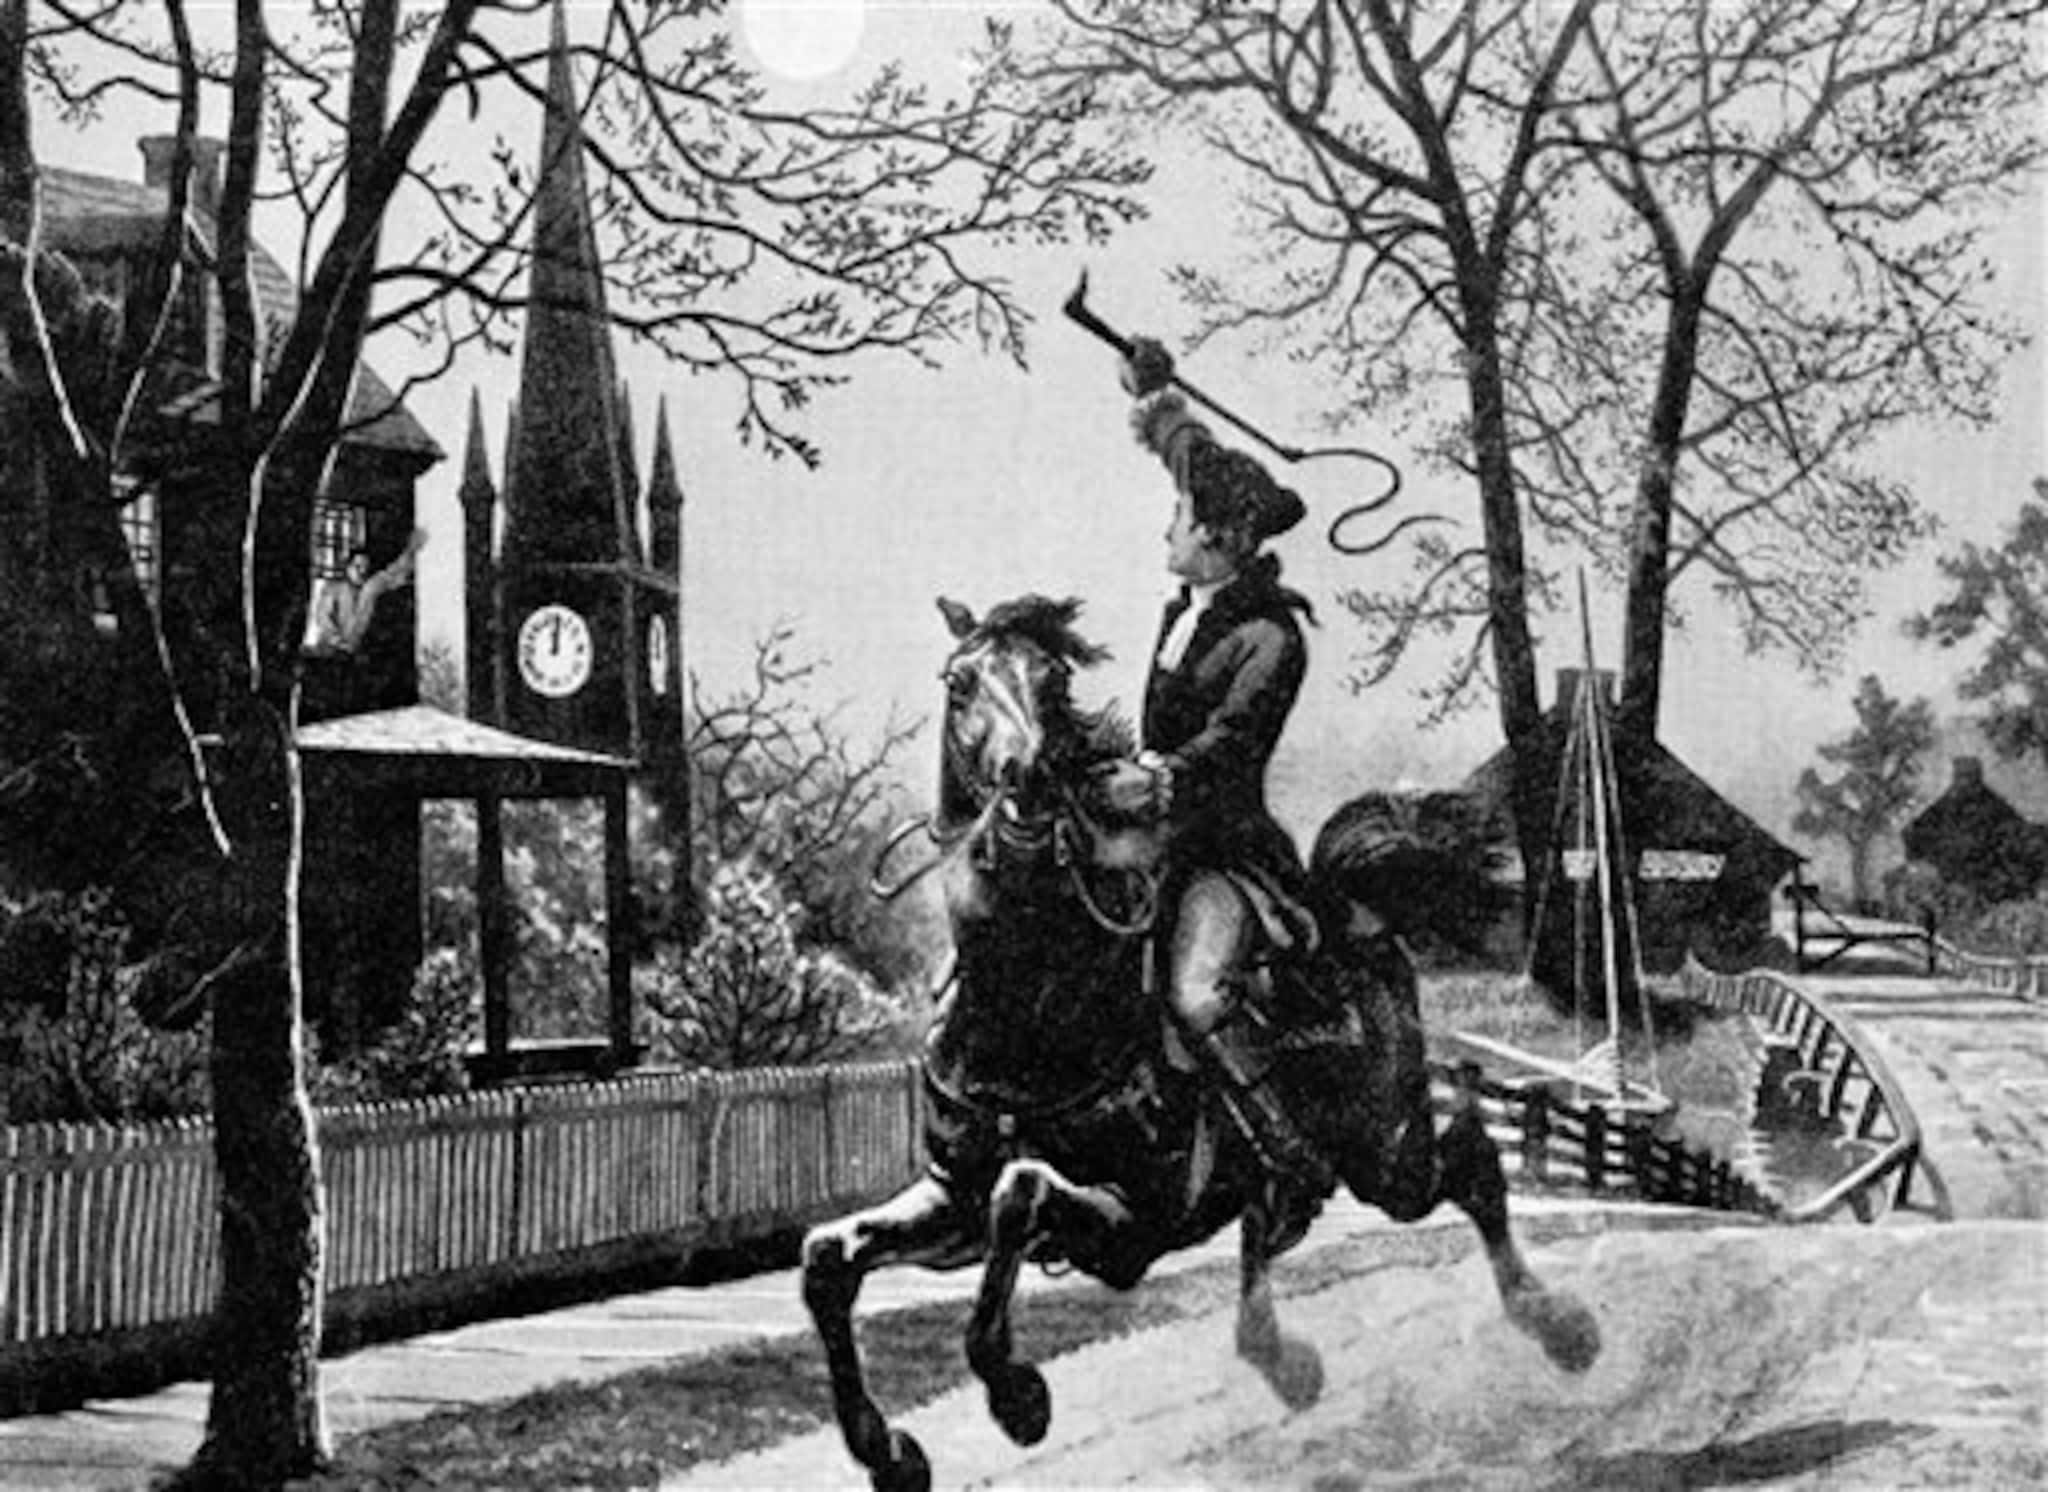 Crane Company S Story Steeped In Lore Of Paul Revere S